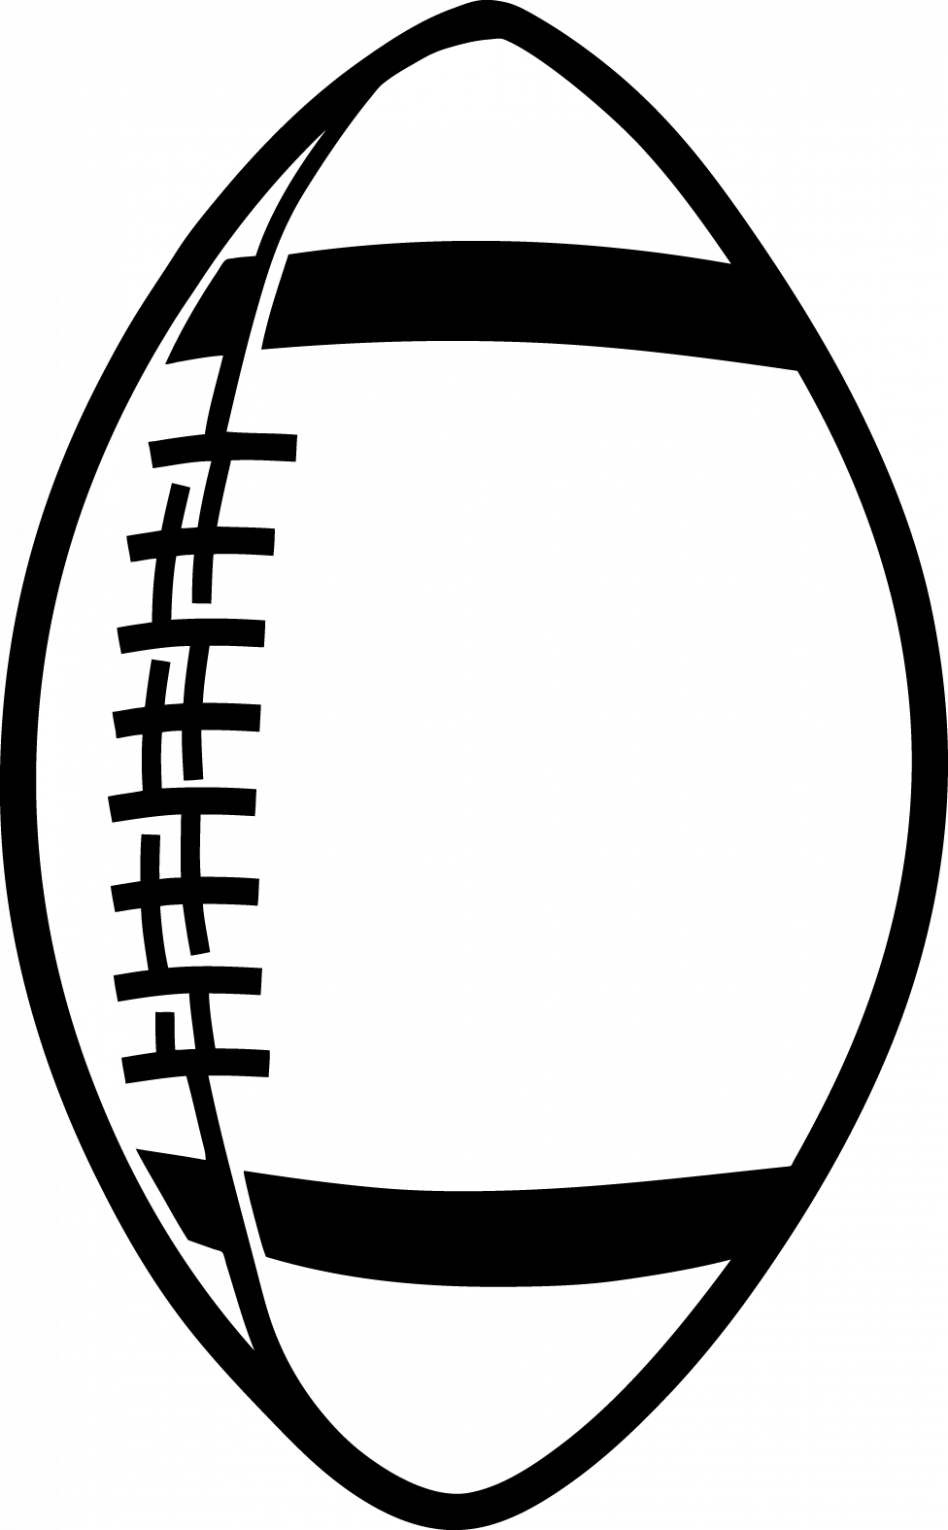 Football Outline Clipart Lightening Ball Of A Pitch Free Jersey Kit ... svg freeuse stock